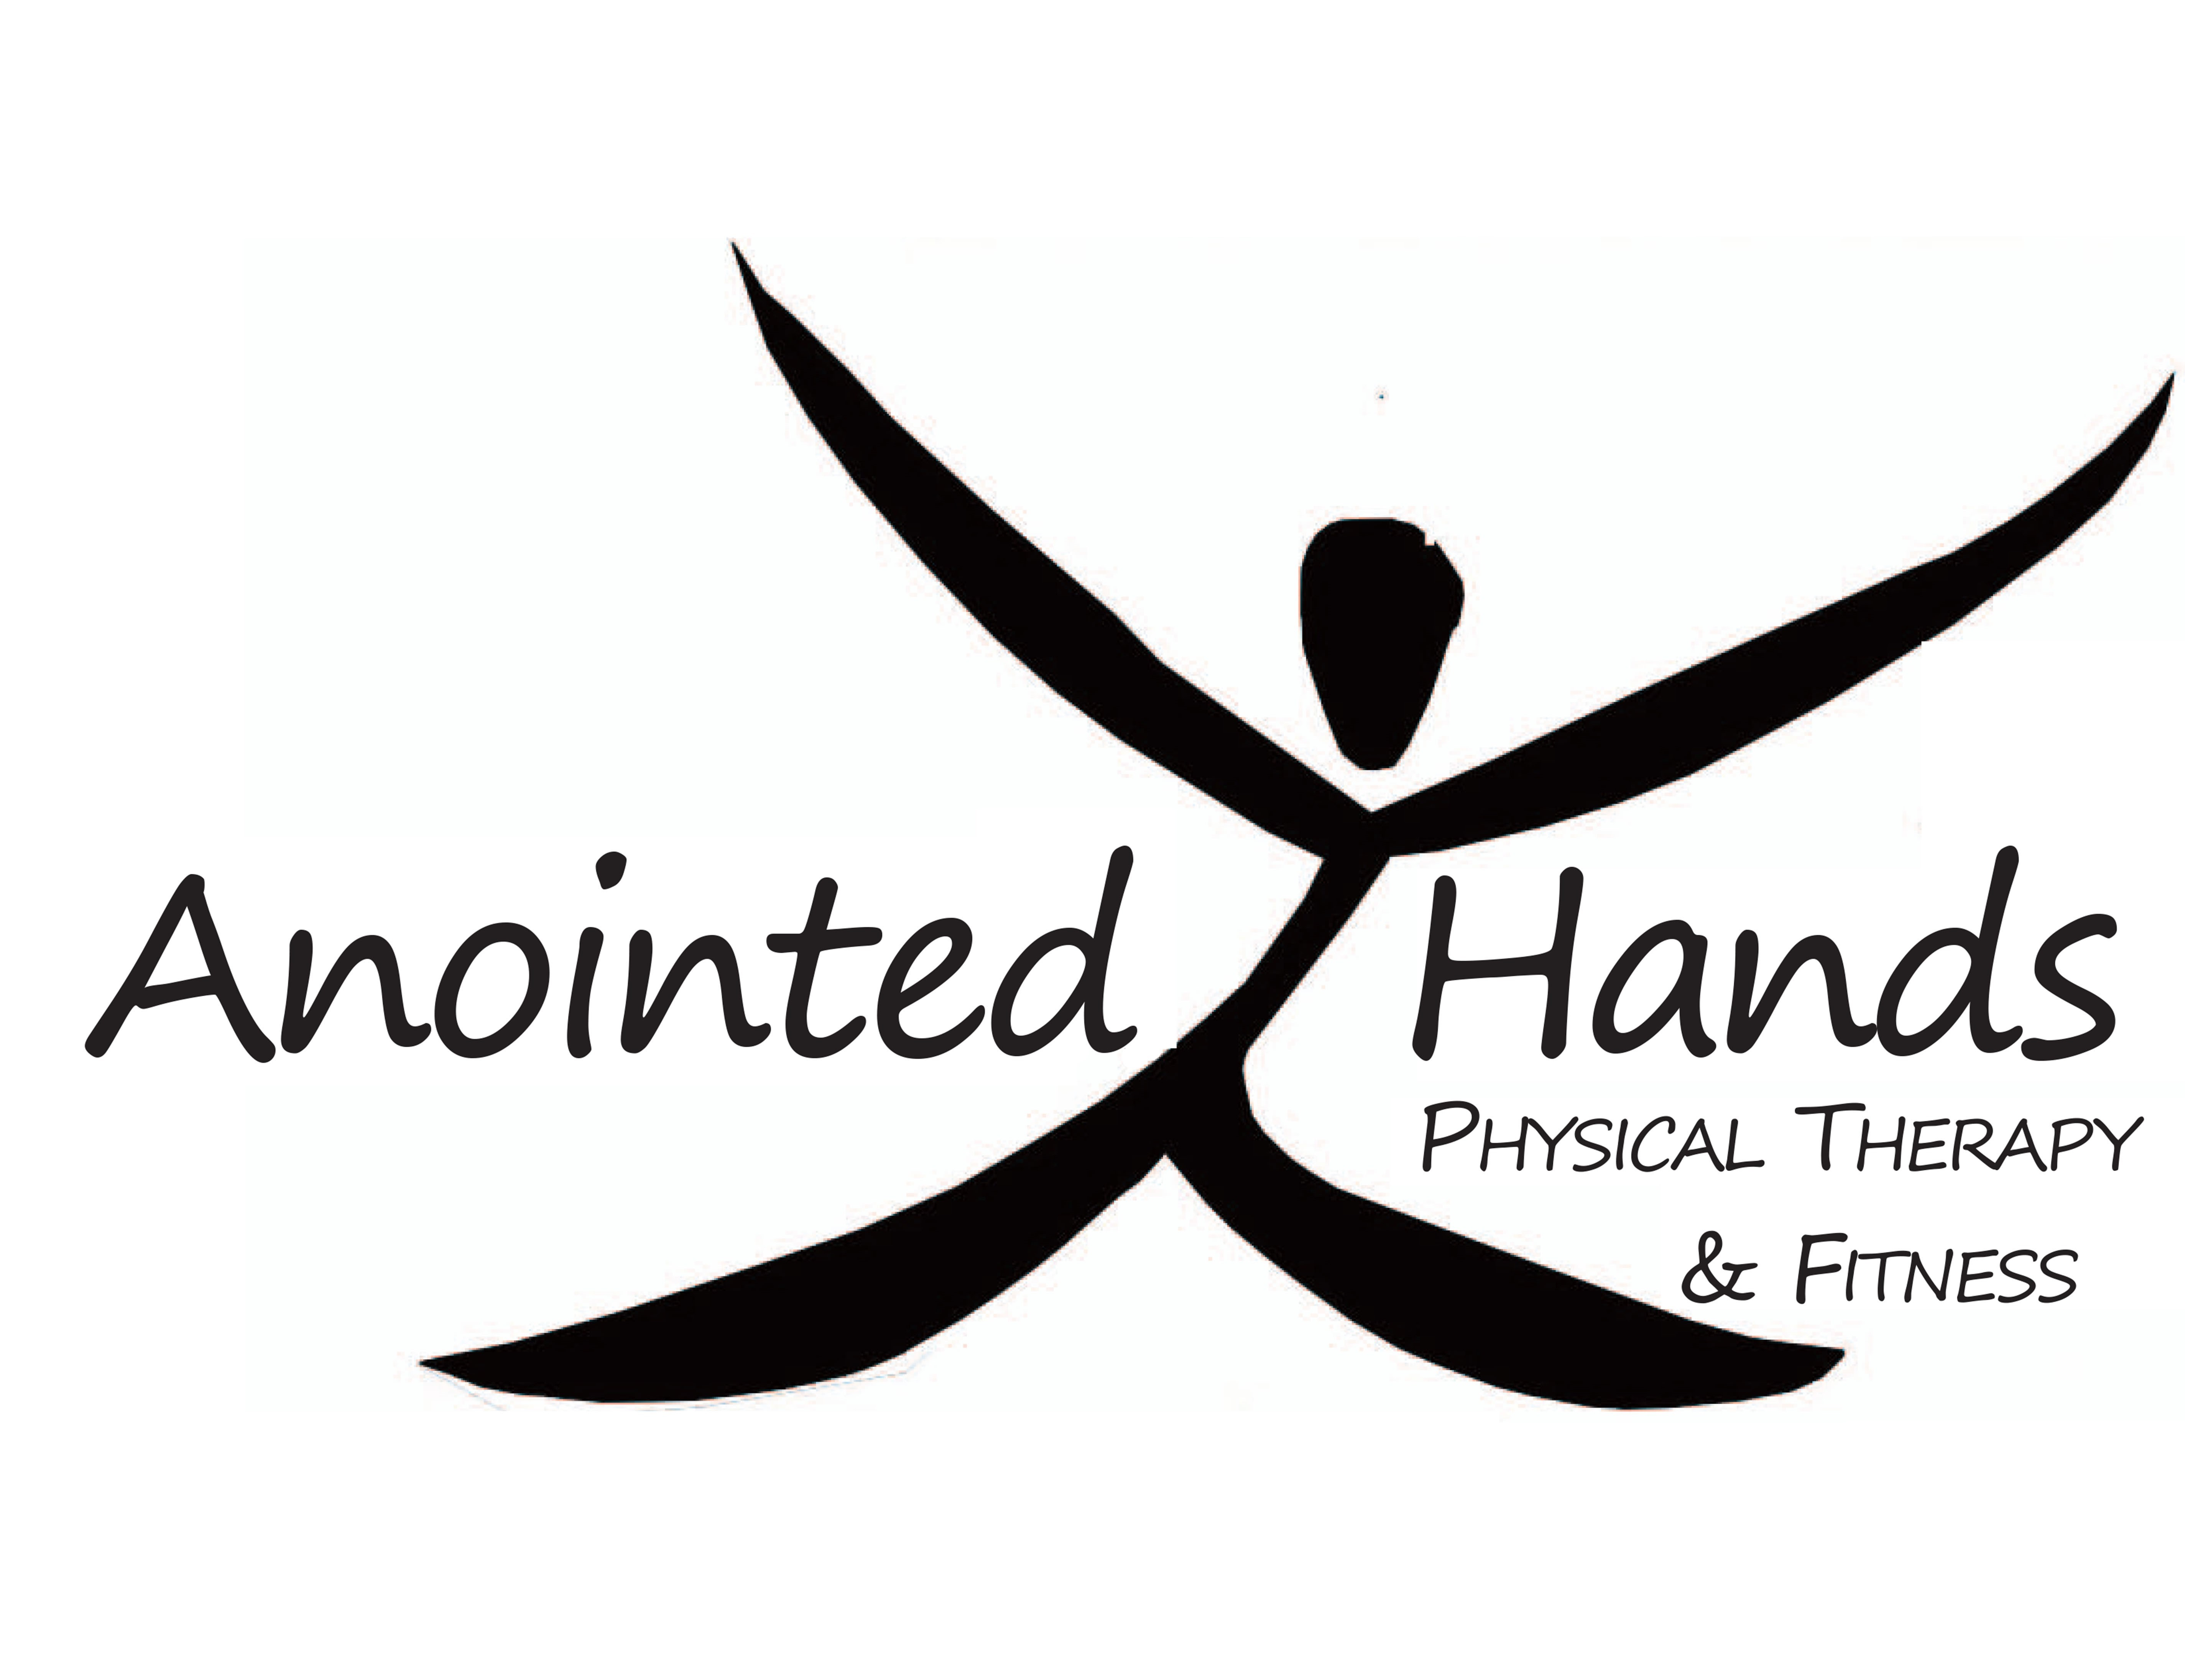 Anointed Hands Physical Therapy & Fitness Logo